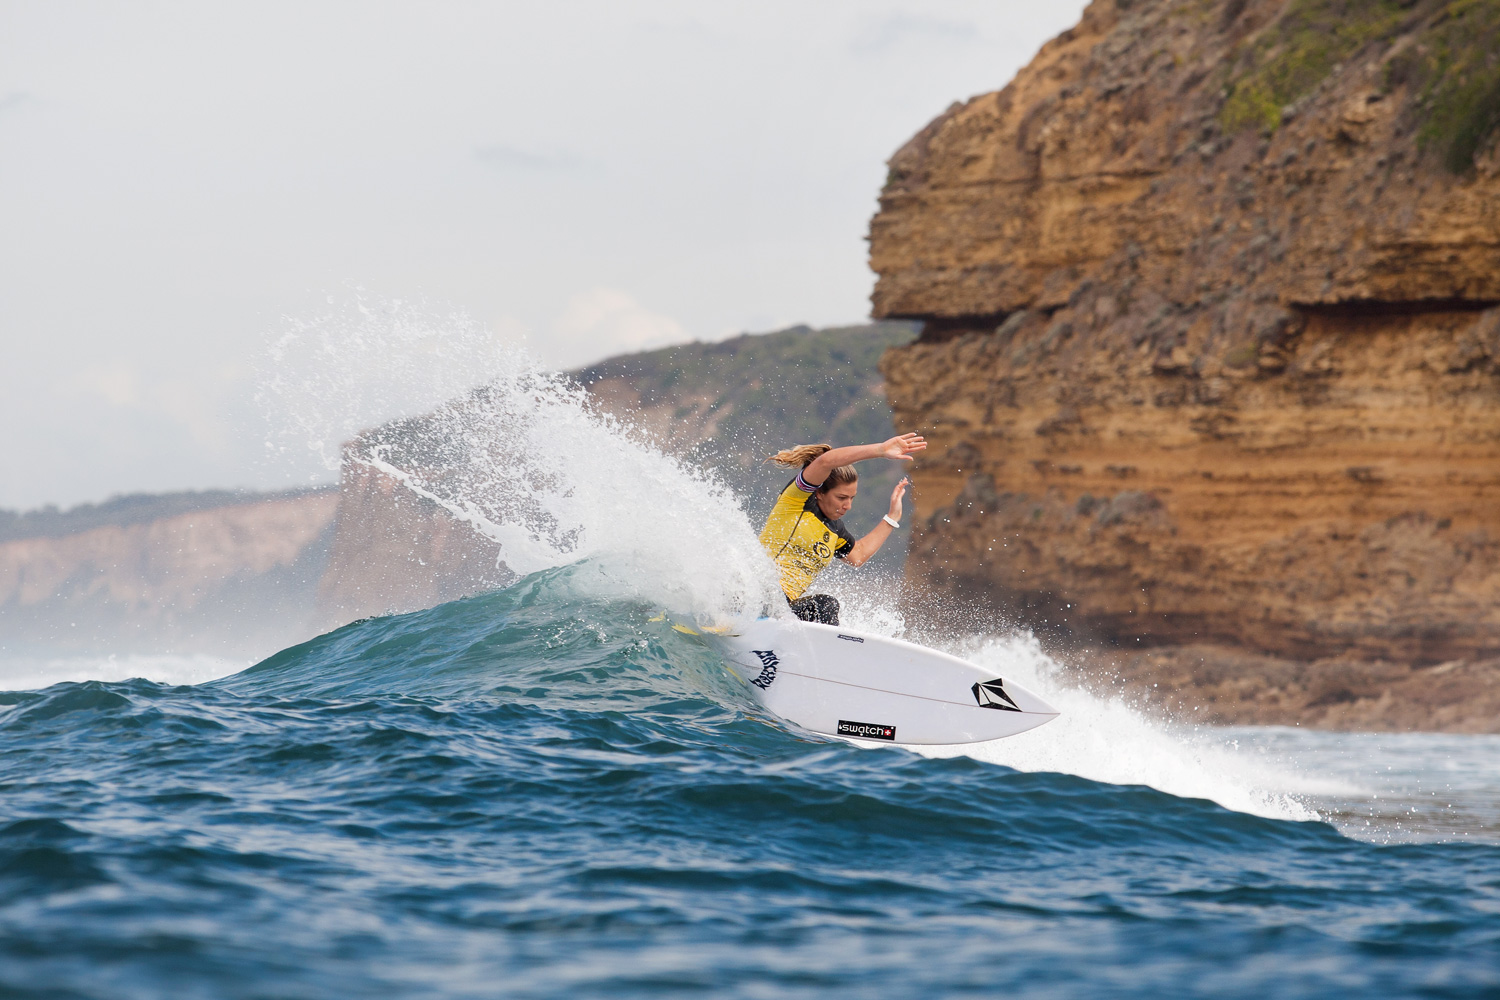 Coco Ho of Hawaii placed second in her first round heat on in Bells Beach, Australia.